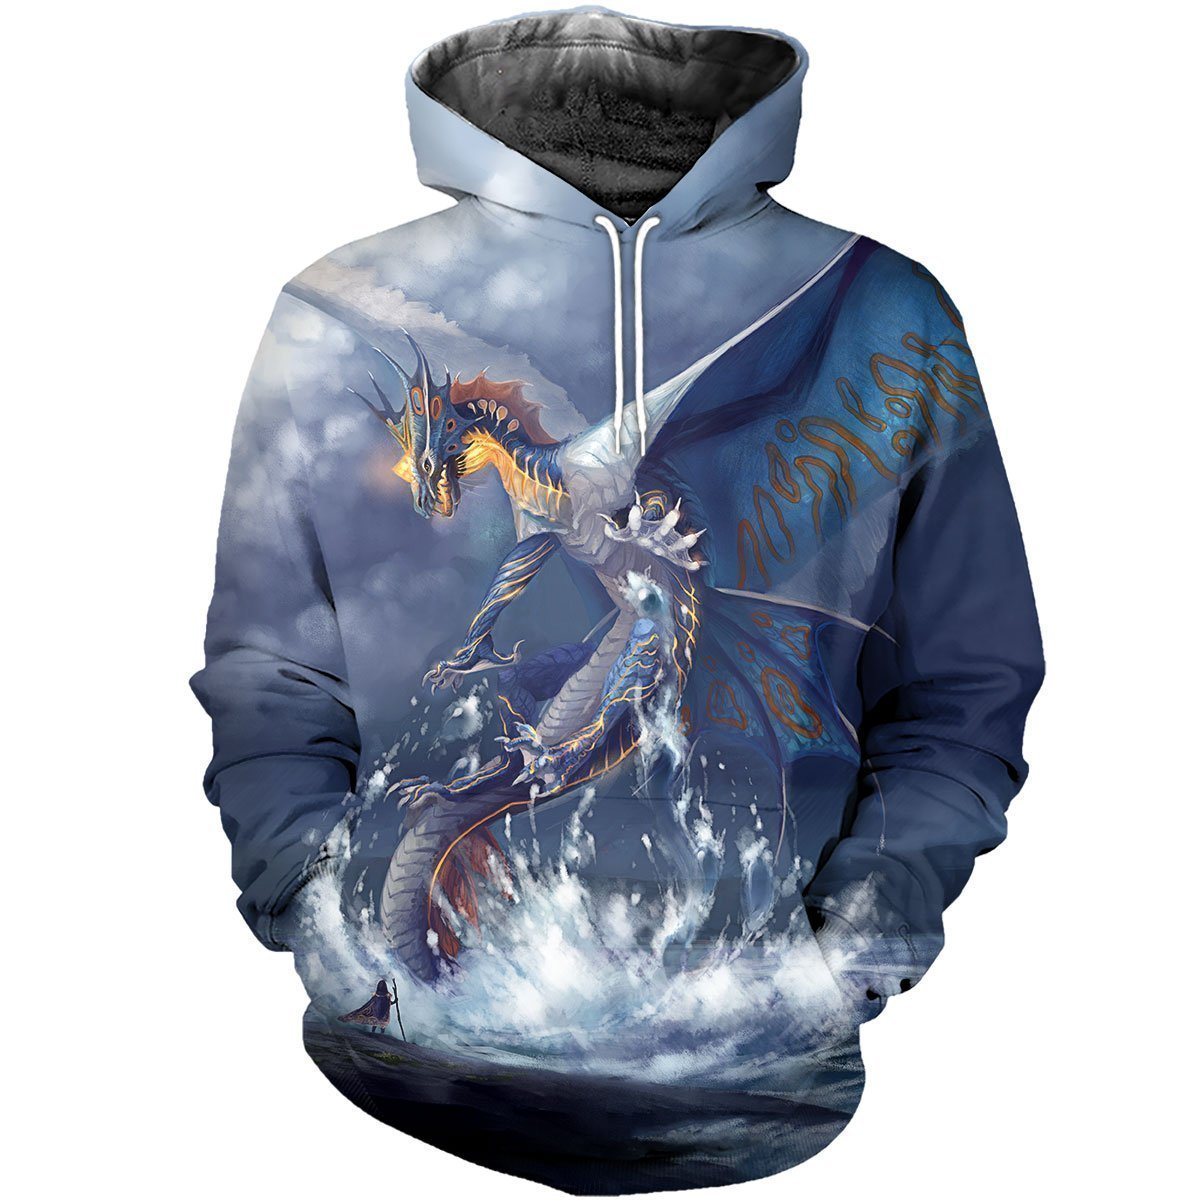 3D All Over Printed Blue Dragon Shirts-Apparel-HP Arts-Hoodie-S-Vibe Cosy™